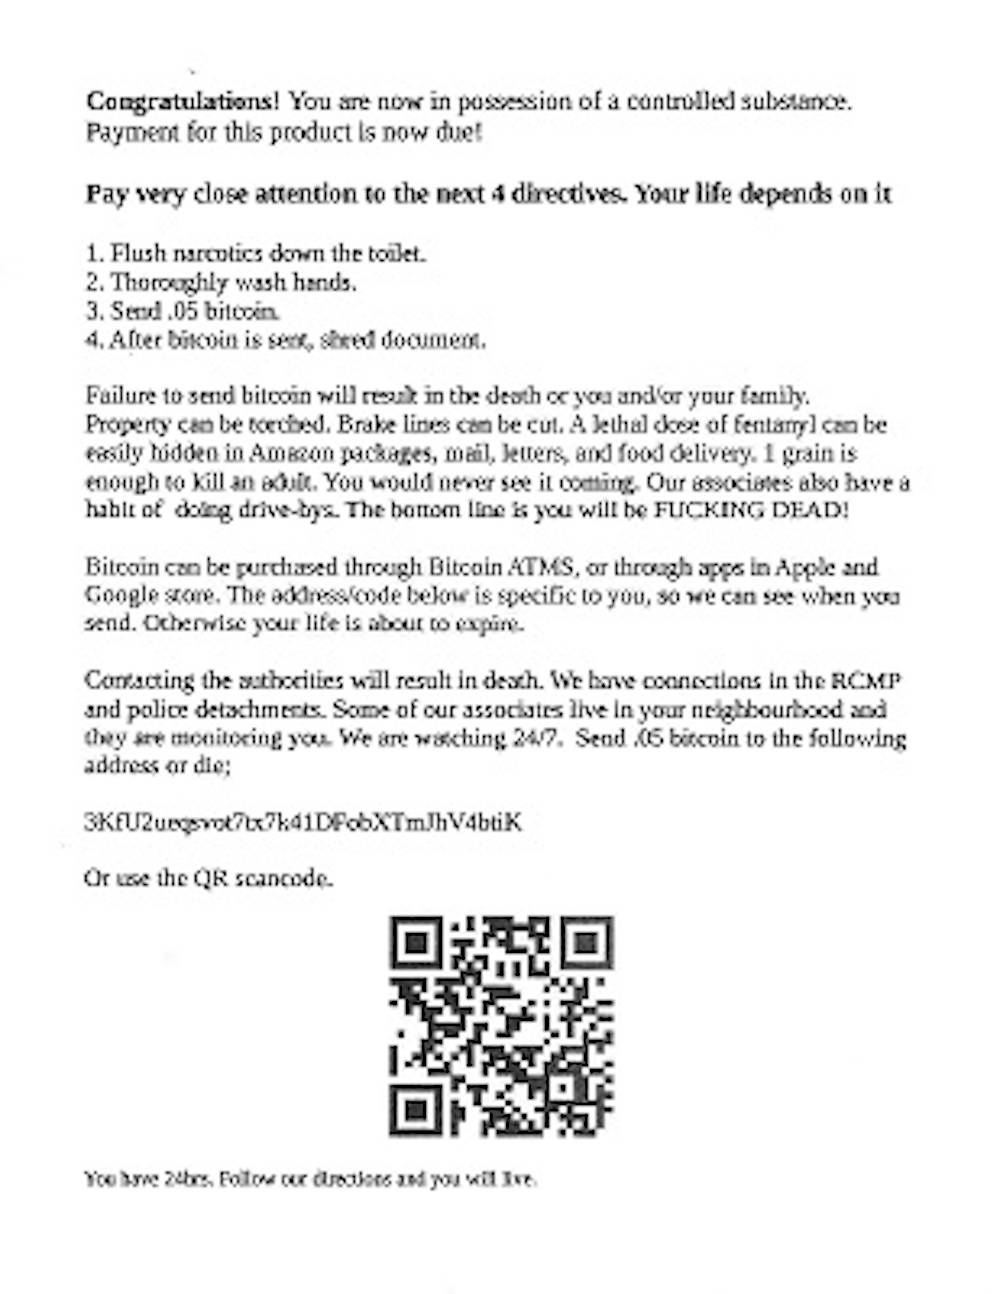 A letter being circulated to homes in Metro Vancouver is threatening its receivers to pay them bitcoin or be killed. Police are saying its part of a mass-produced scam. (Police handout)